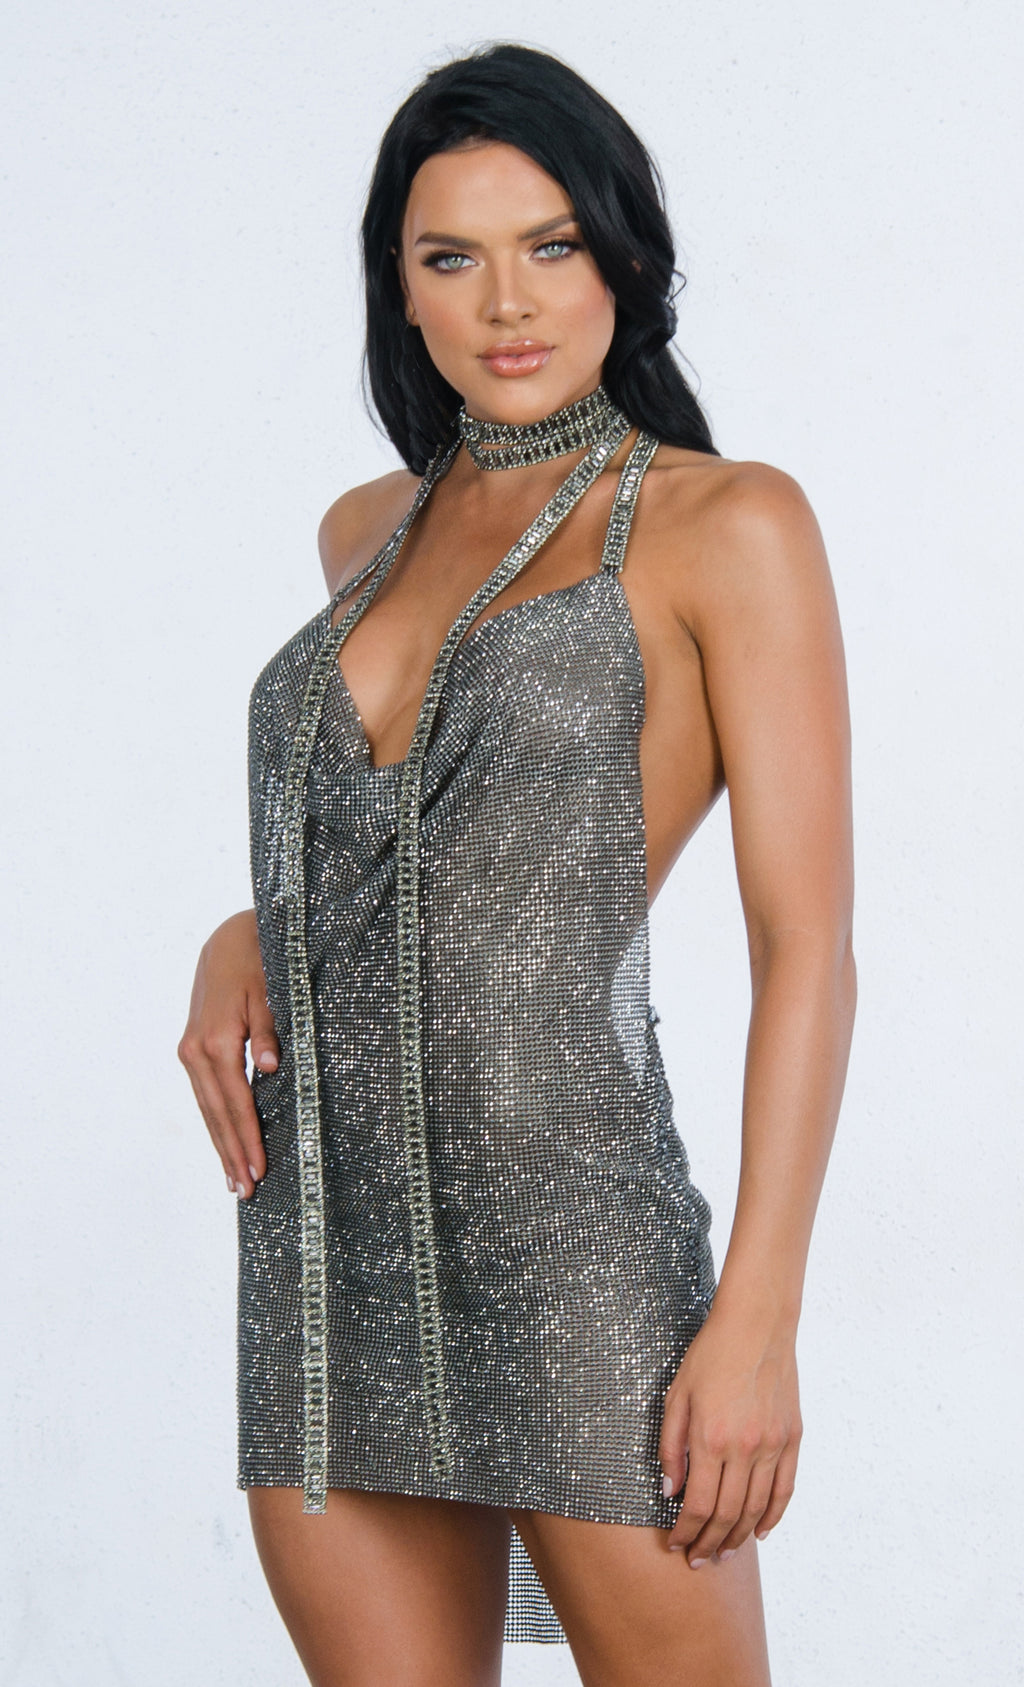 Indie XO Red Carpet Ready Black Smokey Diamanté Metallic Swarovski Crystal Rhinestone Mesh Baguette Cut Halter Chain Backless V Neck Mini Dress